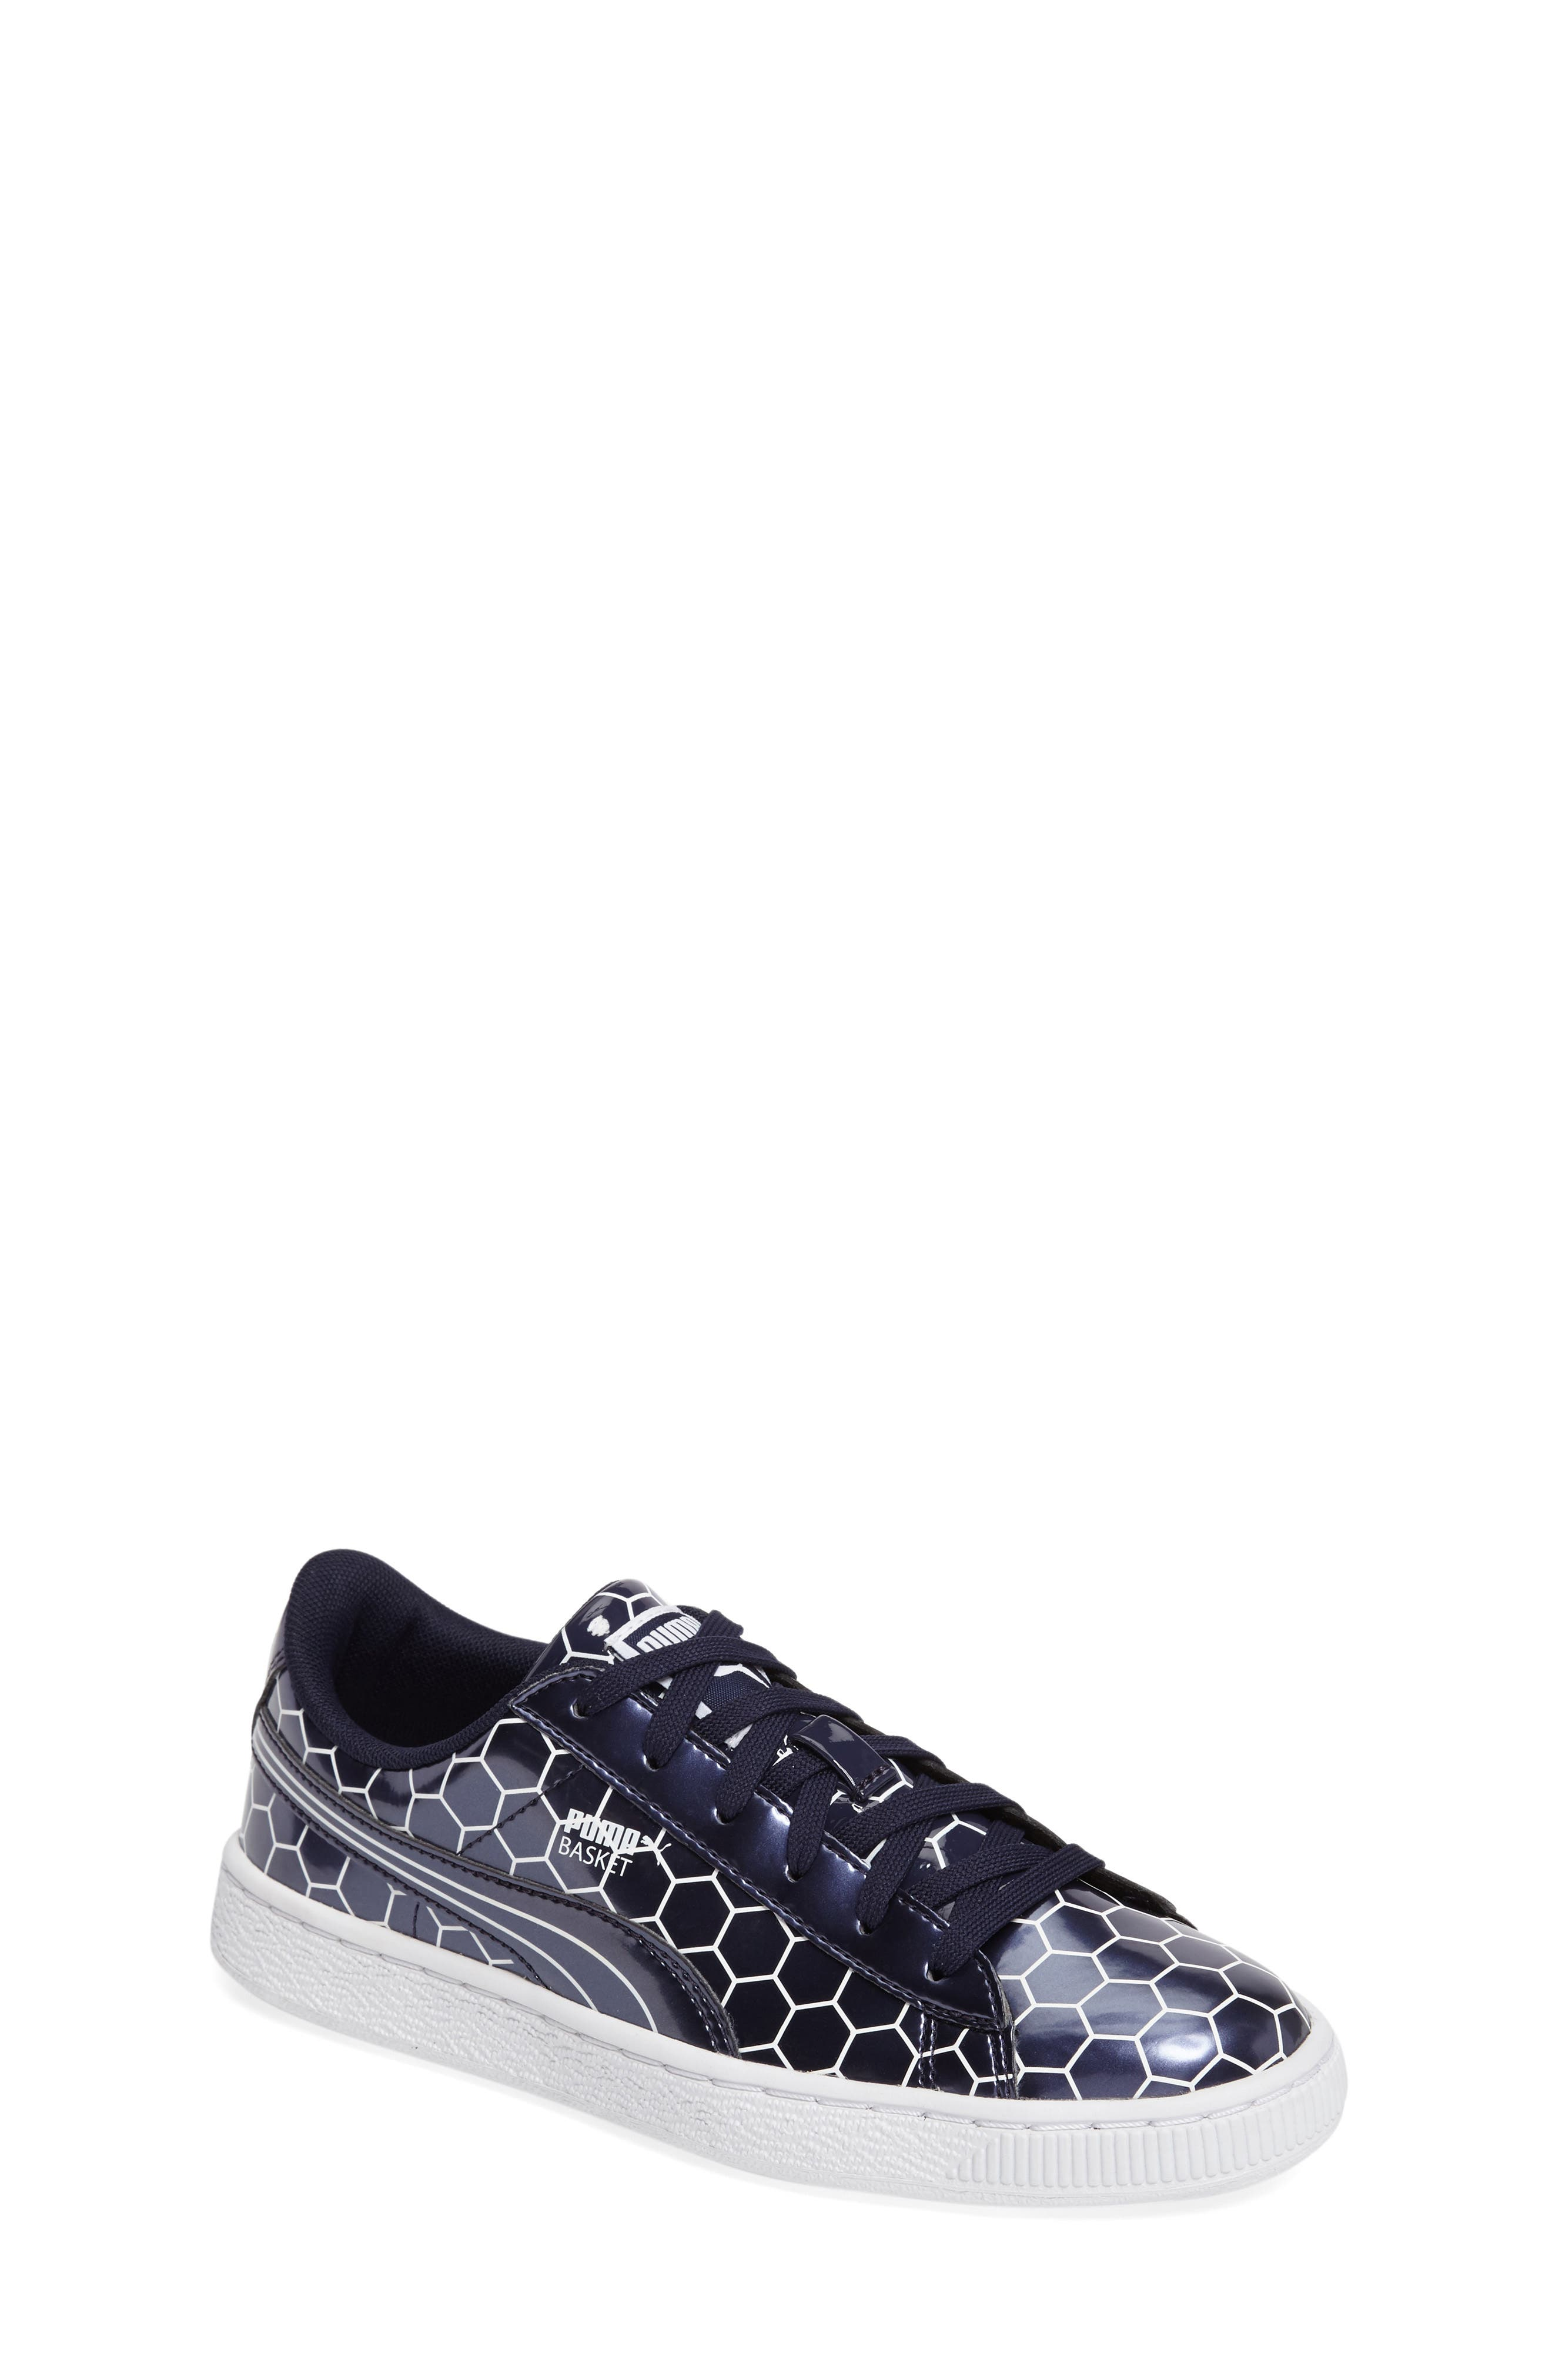 Basket Classic Ano Sneaker,                         Main,                         color, 400